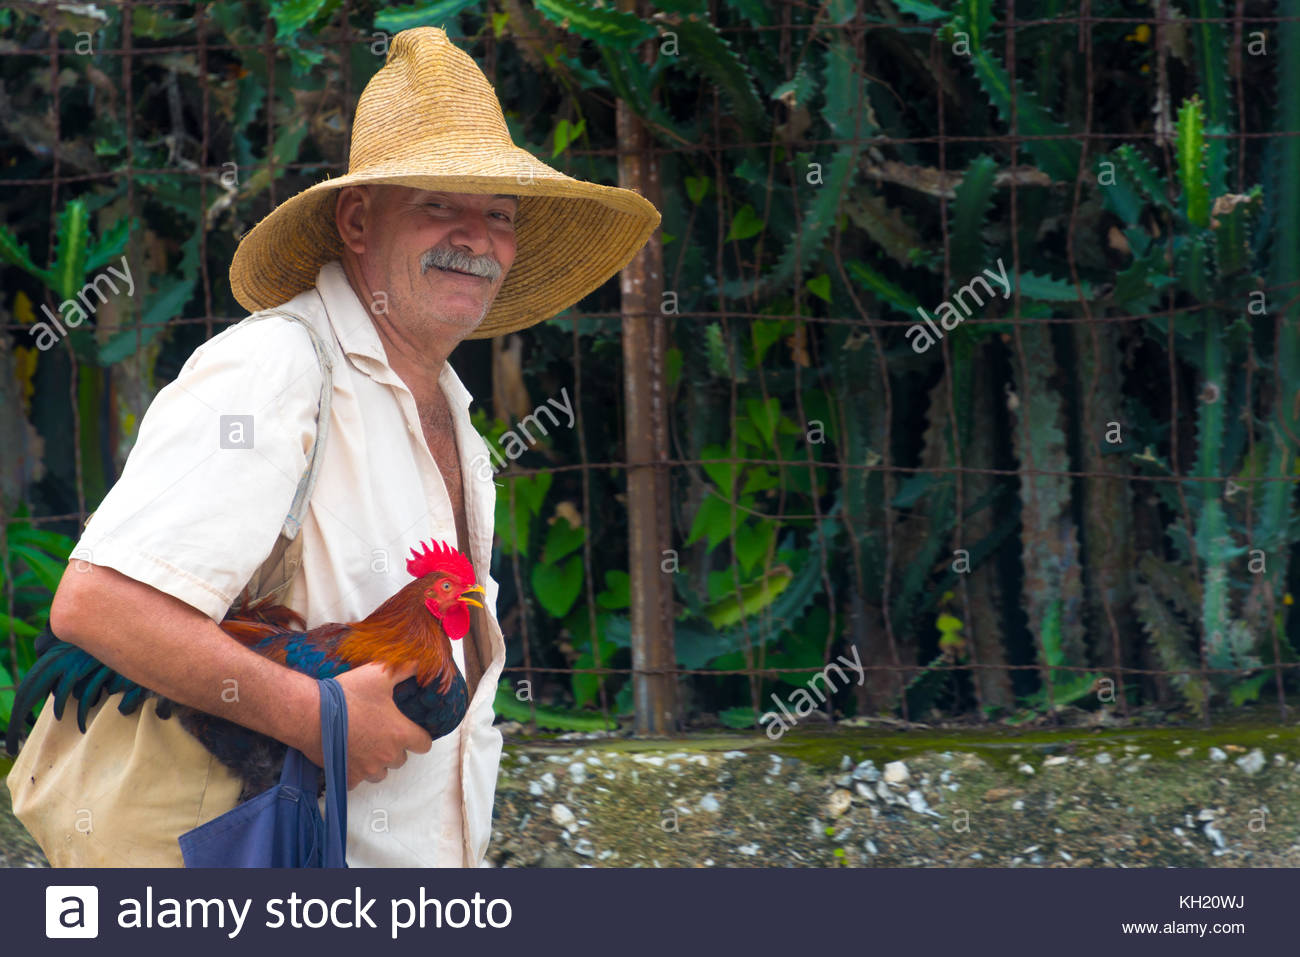 Santa Clara, Cuba: Real Cuban people lifestyle or way of life in the Caribbean Island. Candid Images - Stock Image